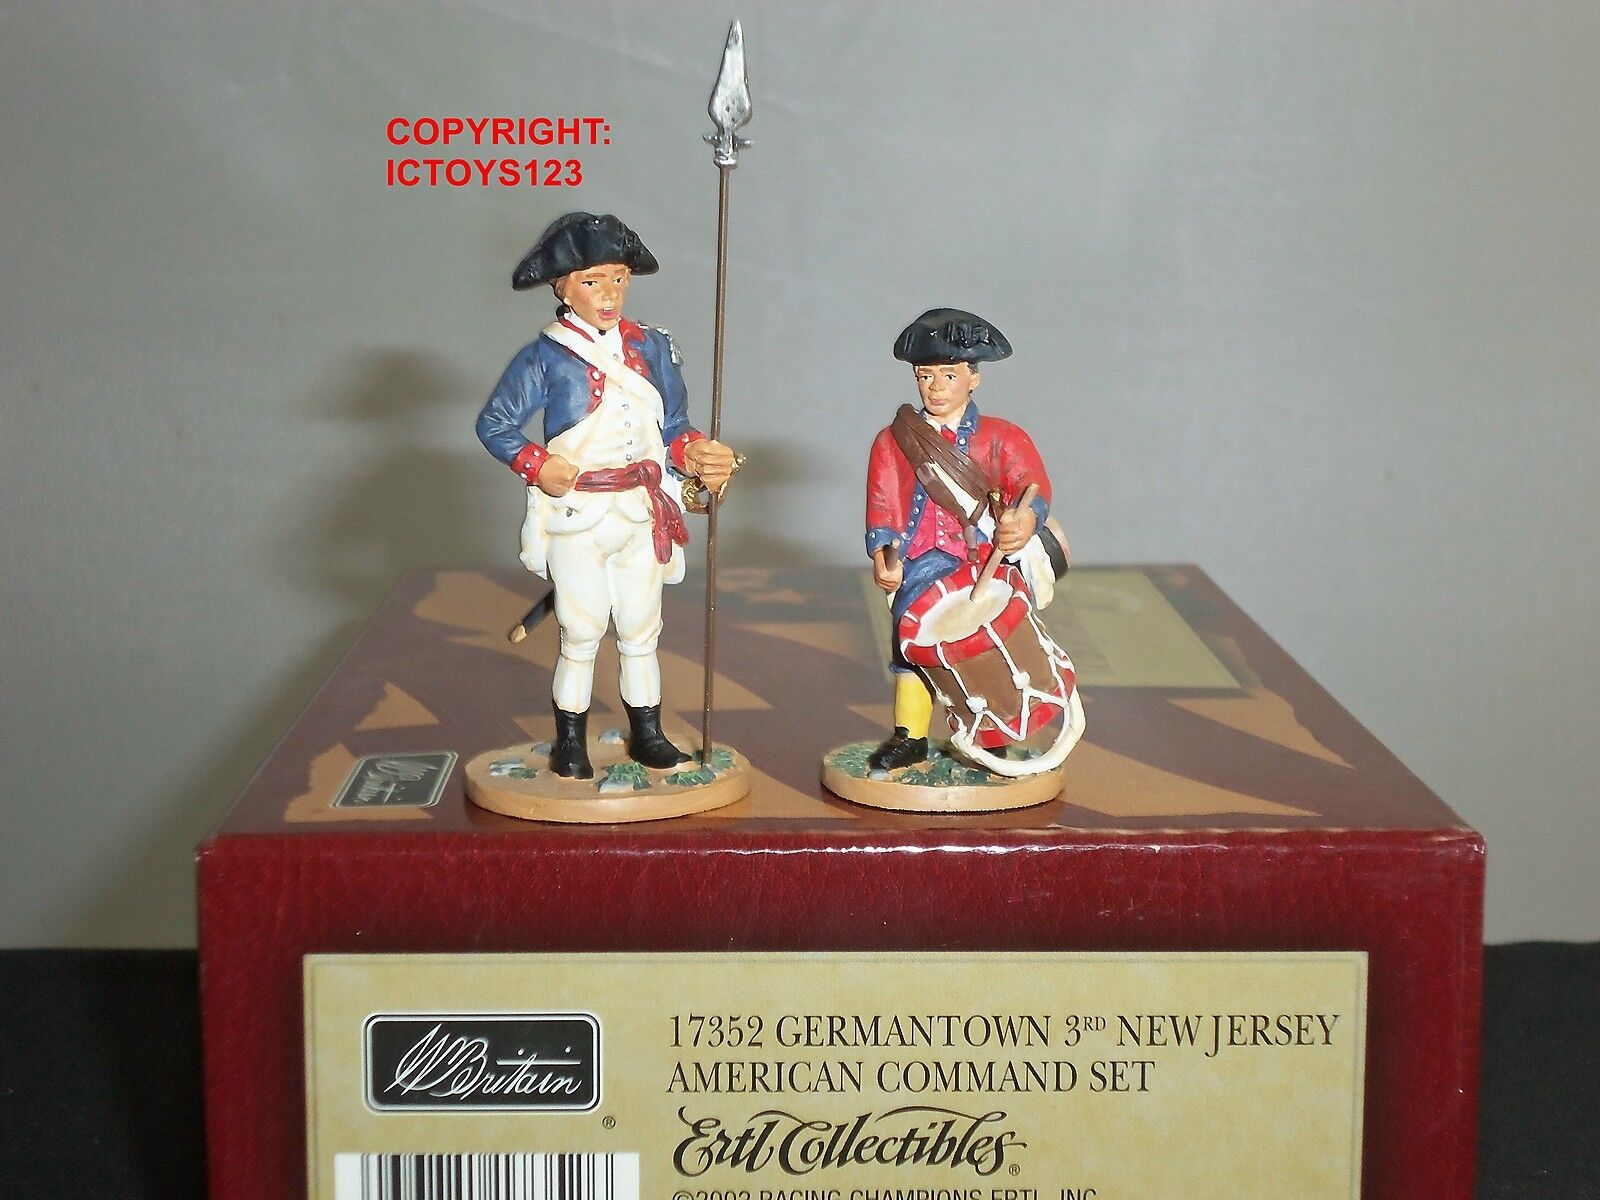 Britains 17352 american 3RD new jersey regiHommes t toy toy toy soldier figure command set cf1843